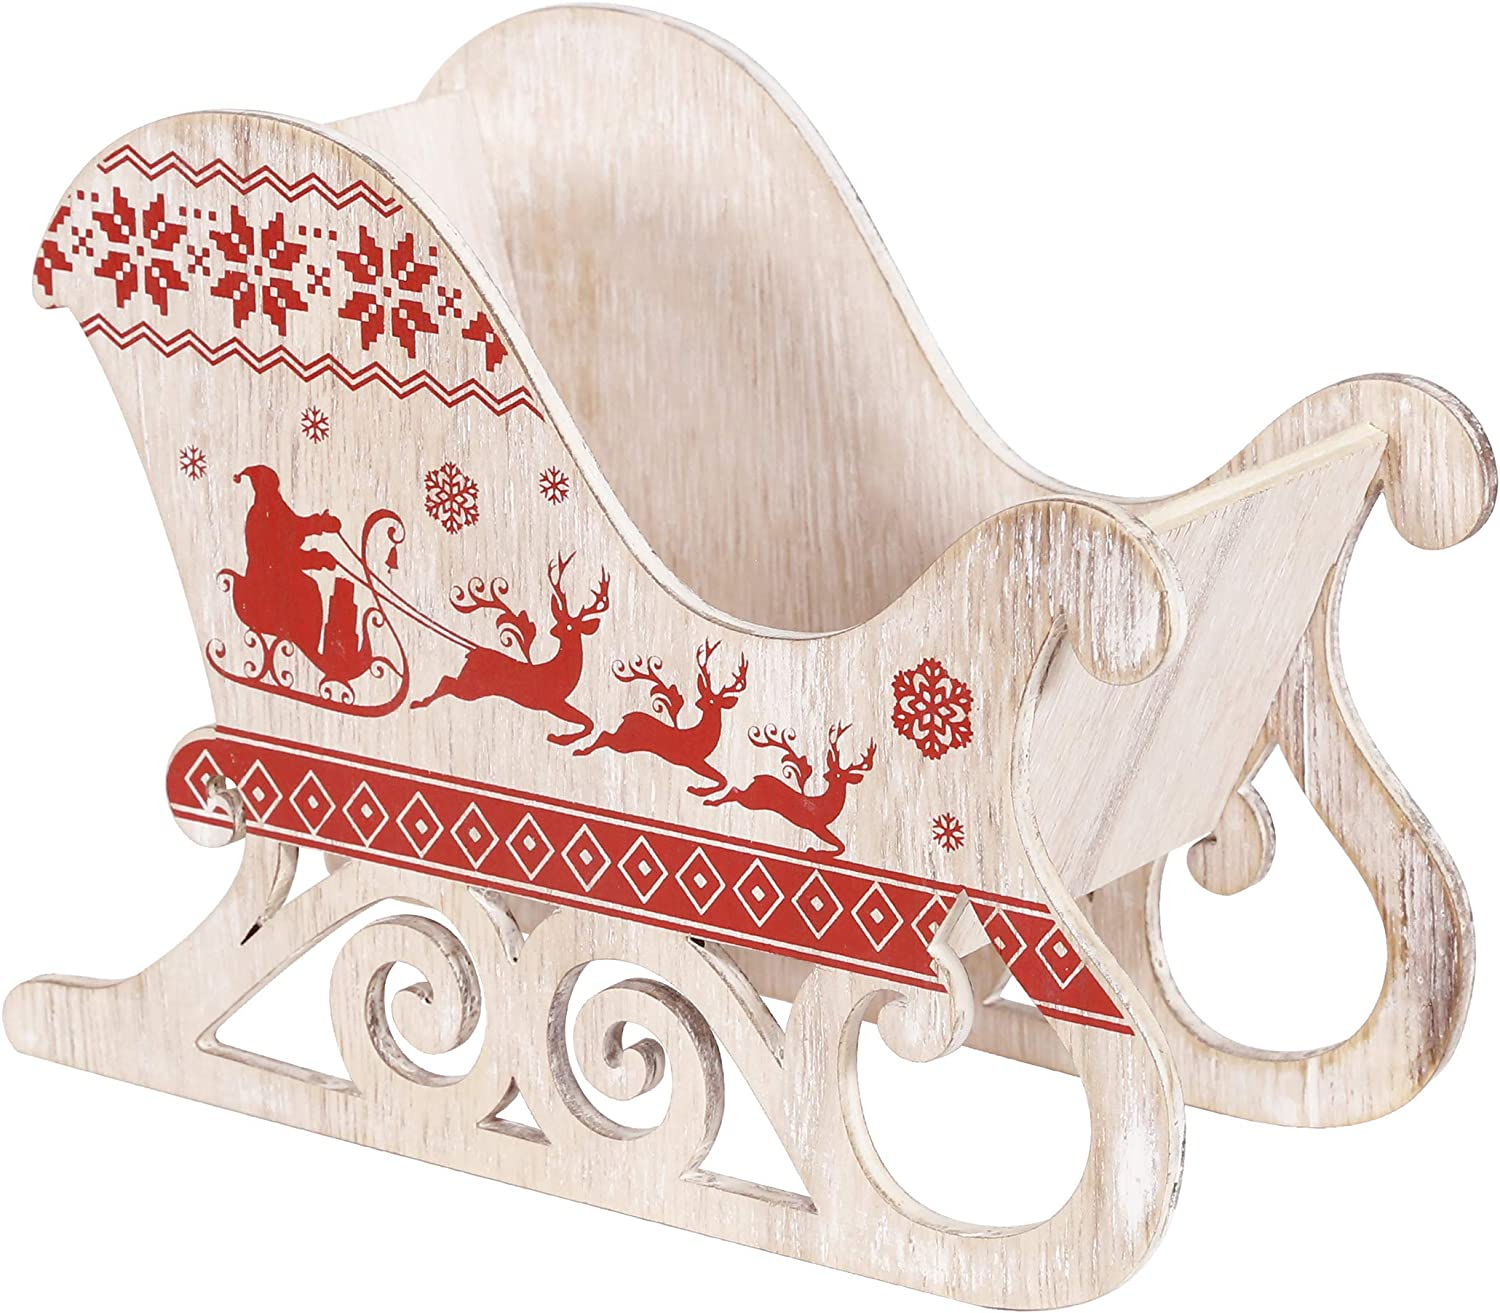 Alpine Corporation WXY142 Wooden Carved Christmas Sleigh Holiday décor, Multi